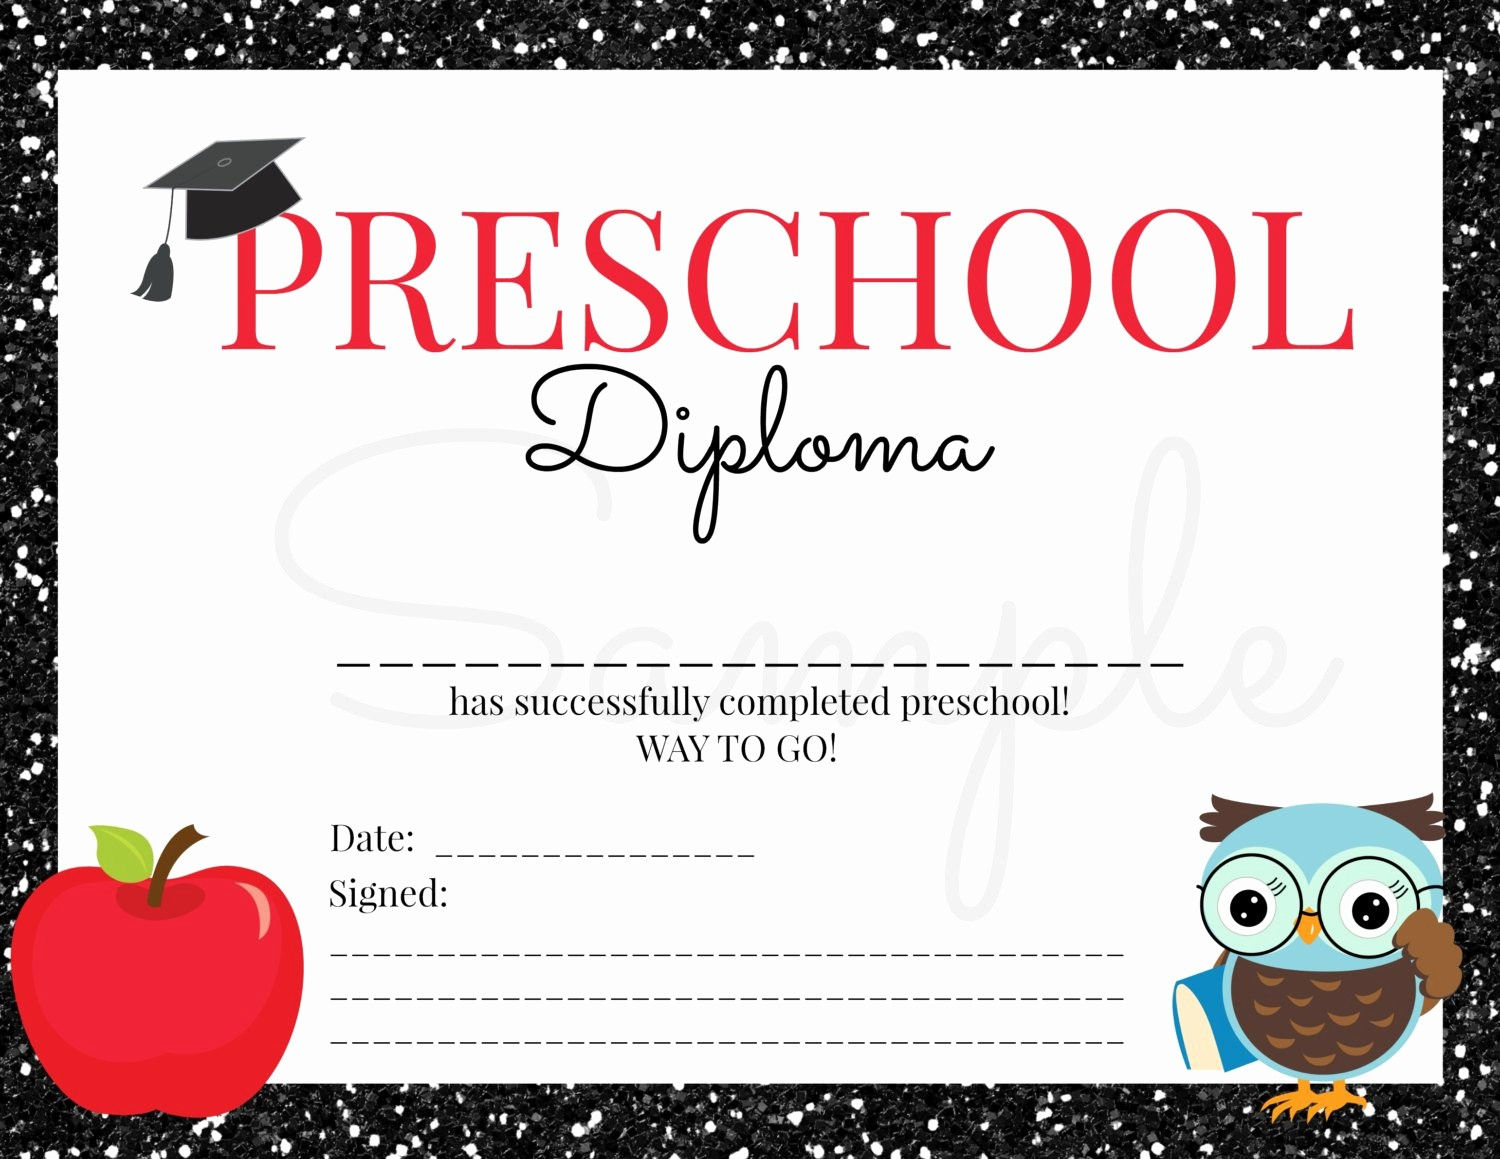 Kindergarten Graduation Diploma Free Printable Awesome Instant Download Preschool Graduation Diploma for Boy